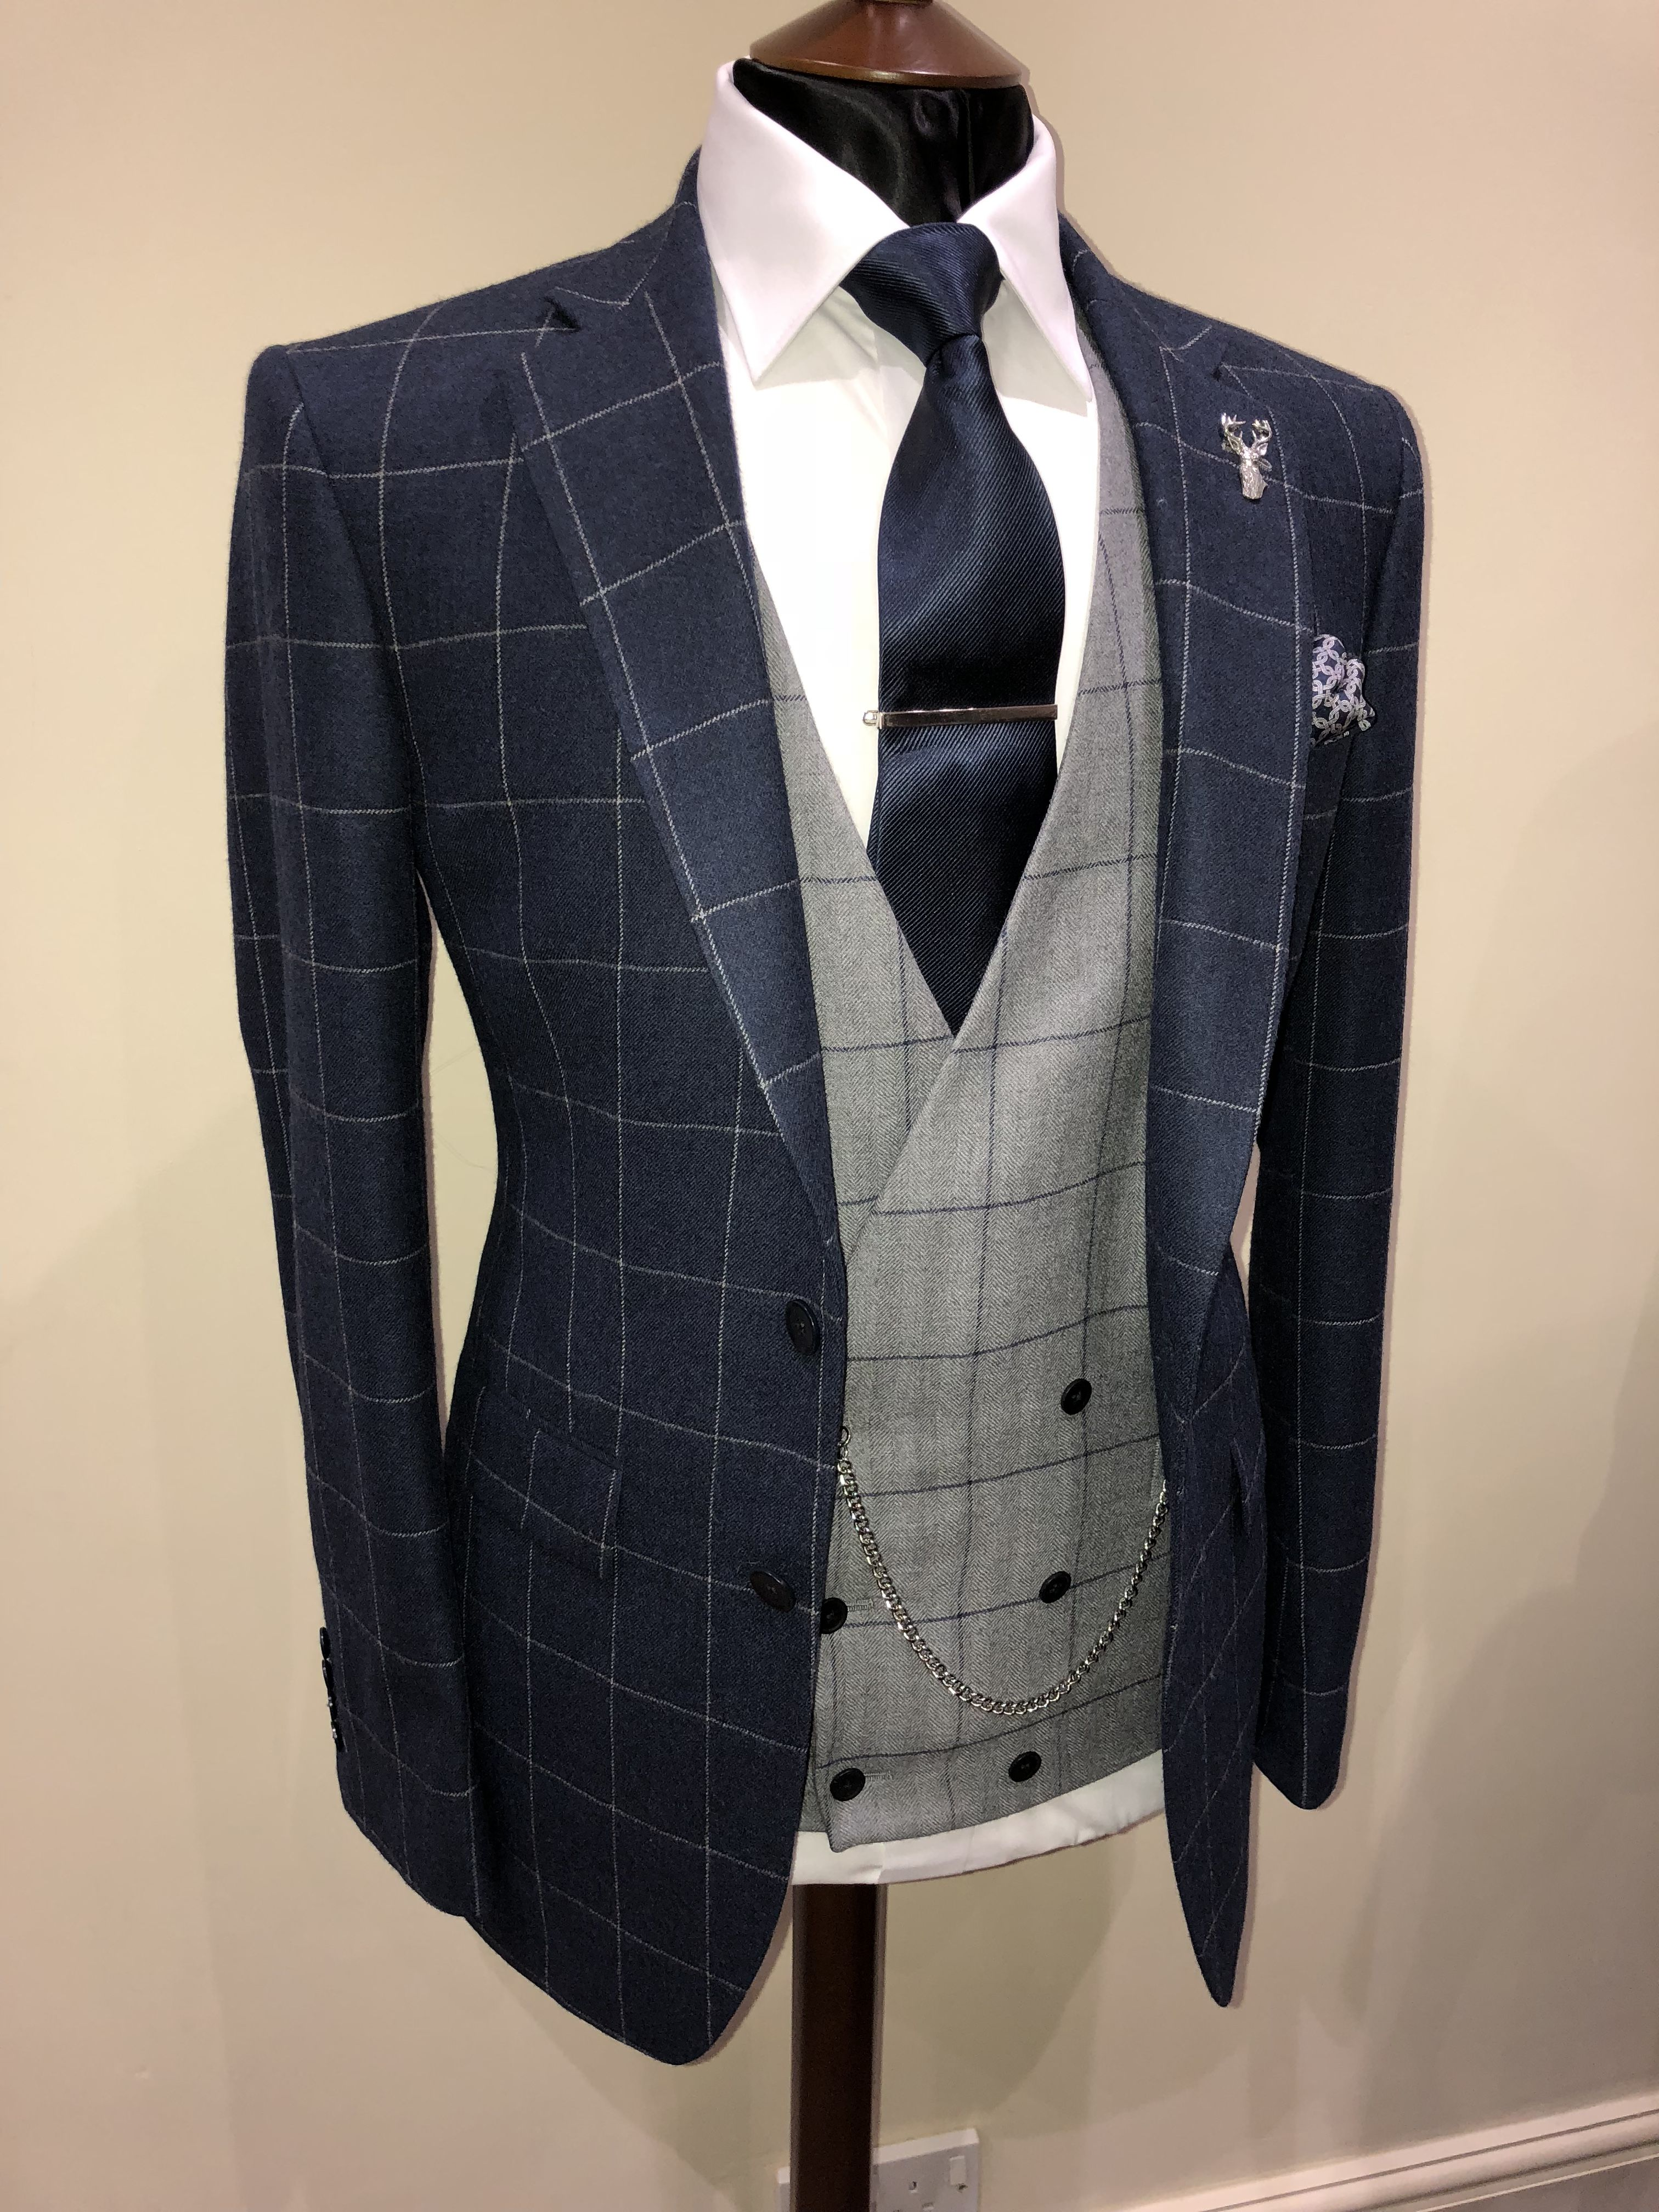 Wedding Suit Hire For Men Tailoring In 2018 Clobber Pinterest